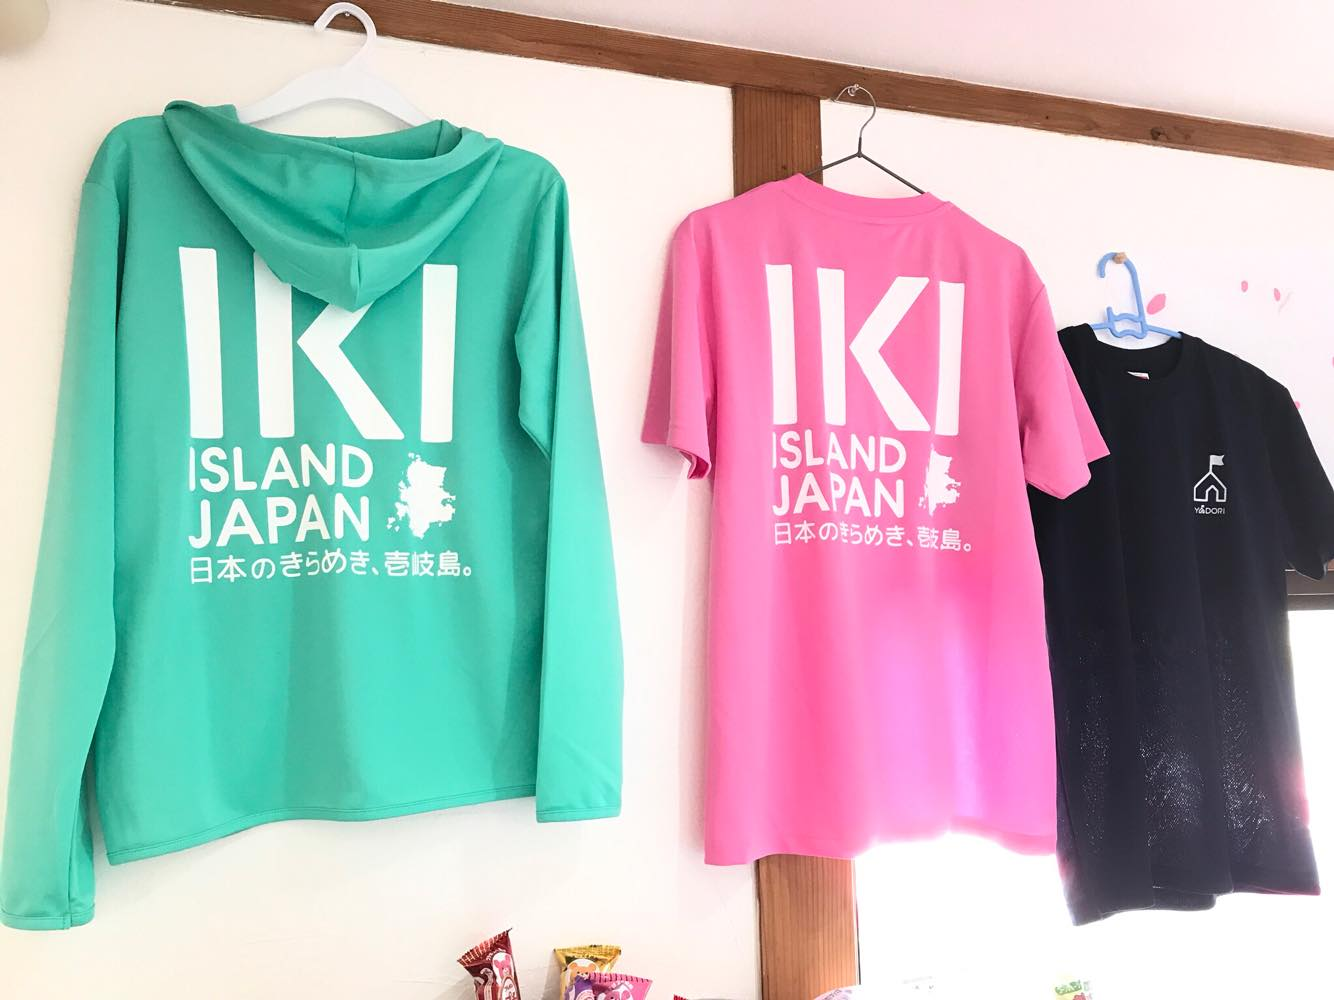 IKIパーカーIKITシャツ